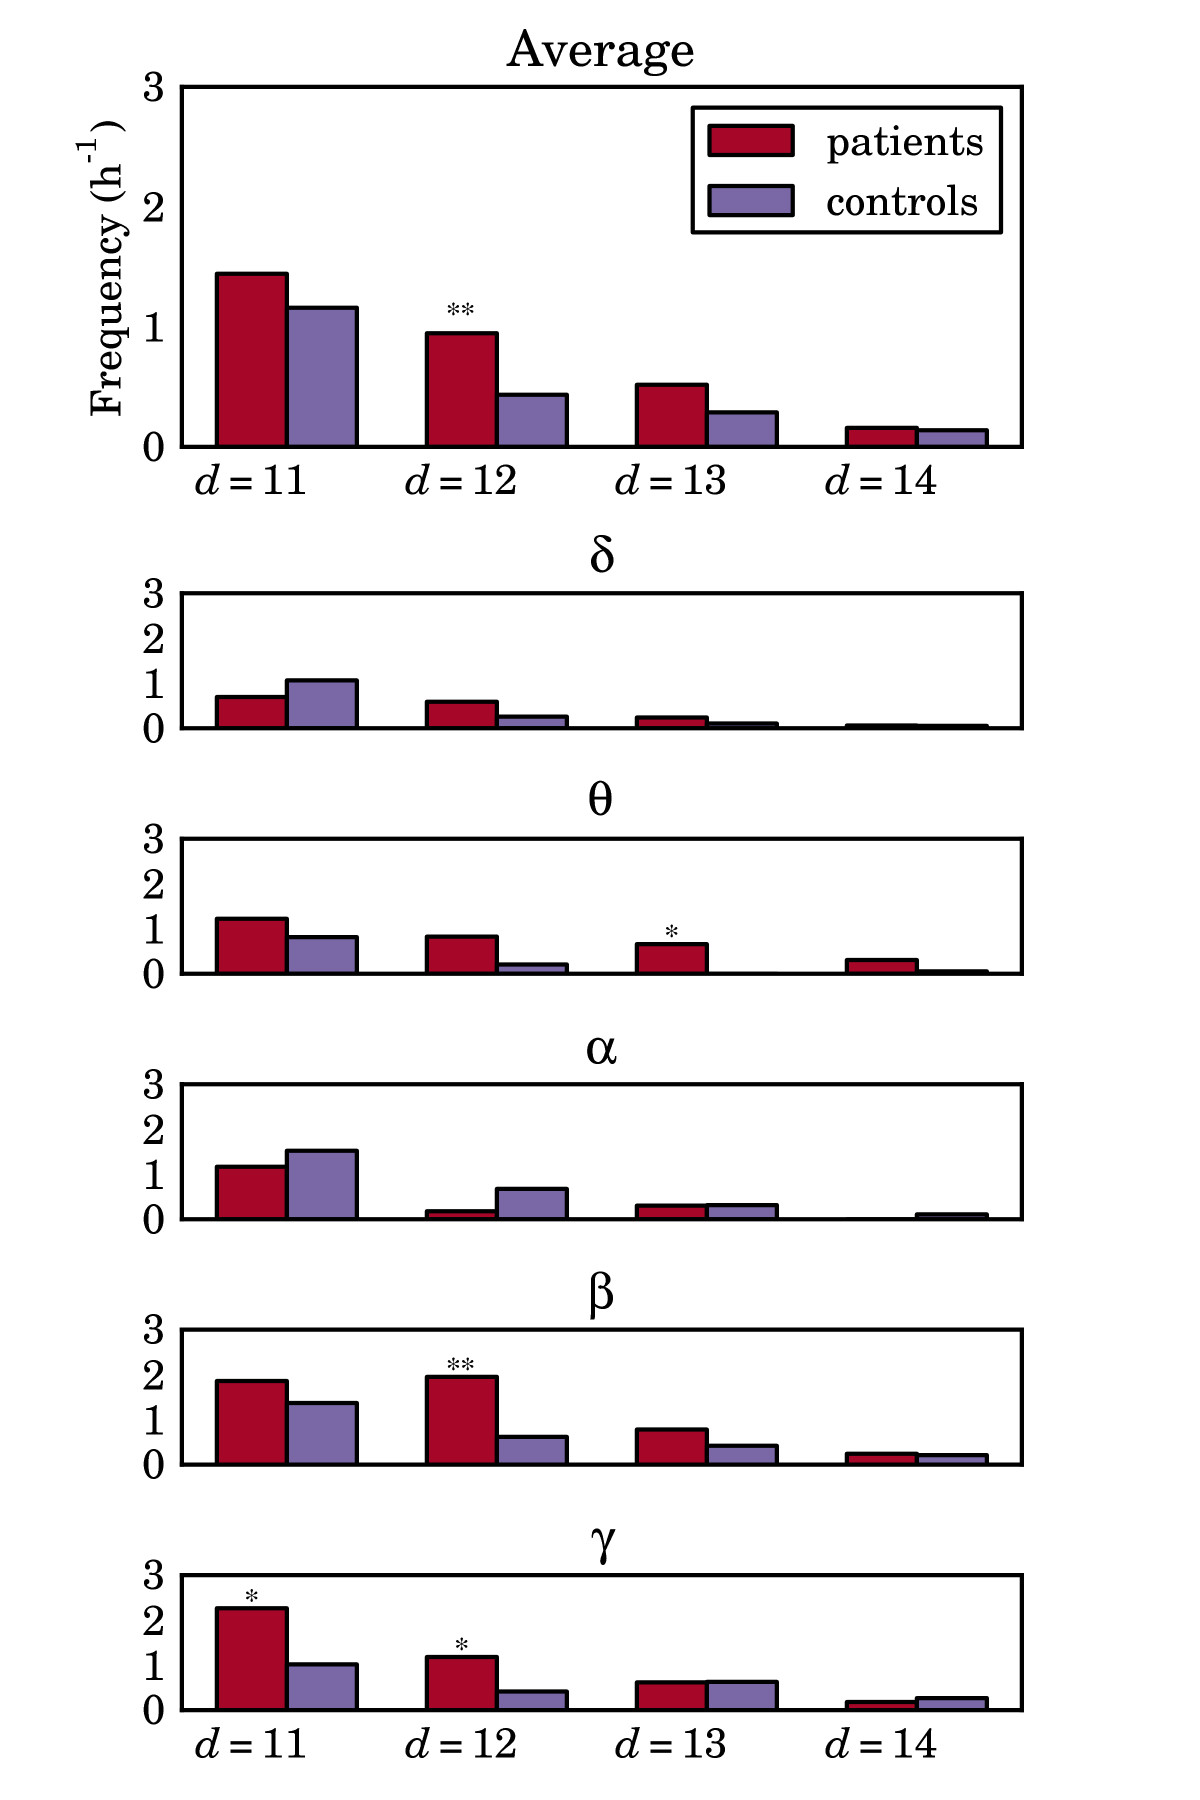 https://static-content.springer.com/image/art%3A10.1186%2F2190-8567-2-1/MediaObjects/13408_2011_Article_13_Fig8_HTML.jpg